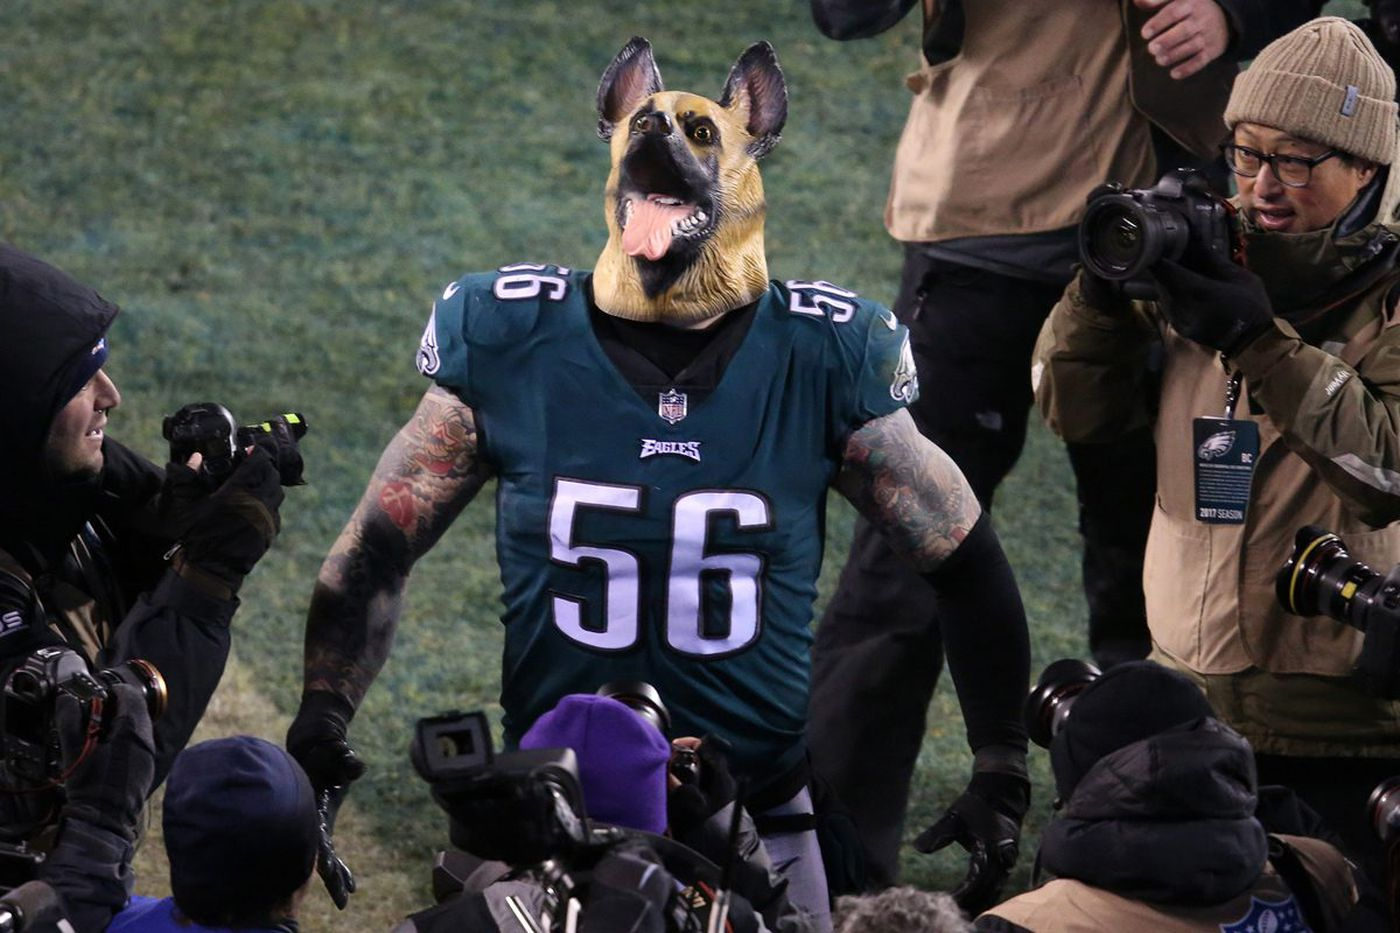 Eagles underdog masks quickly sell out on Amazon